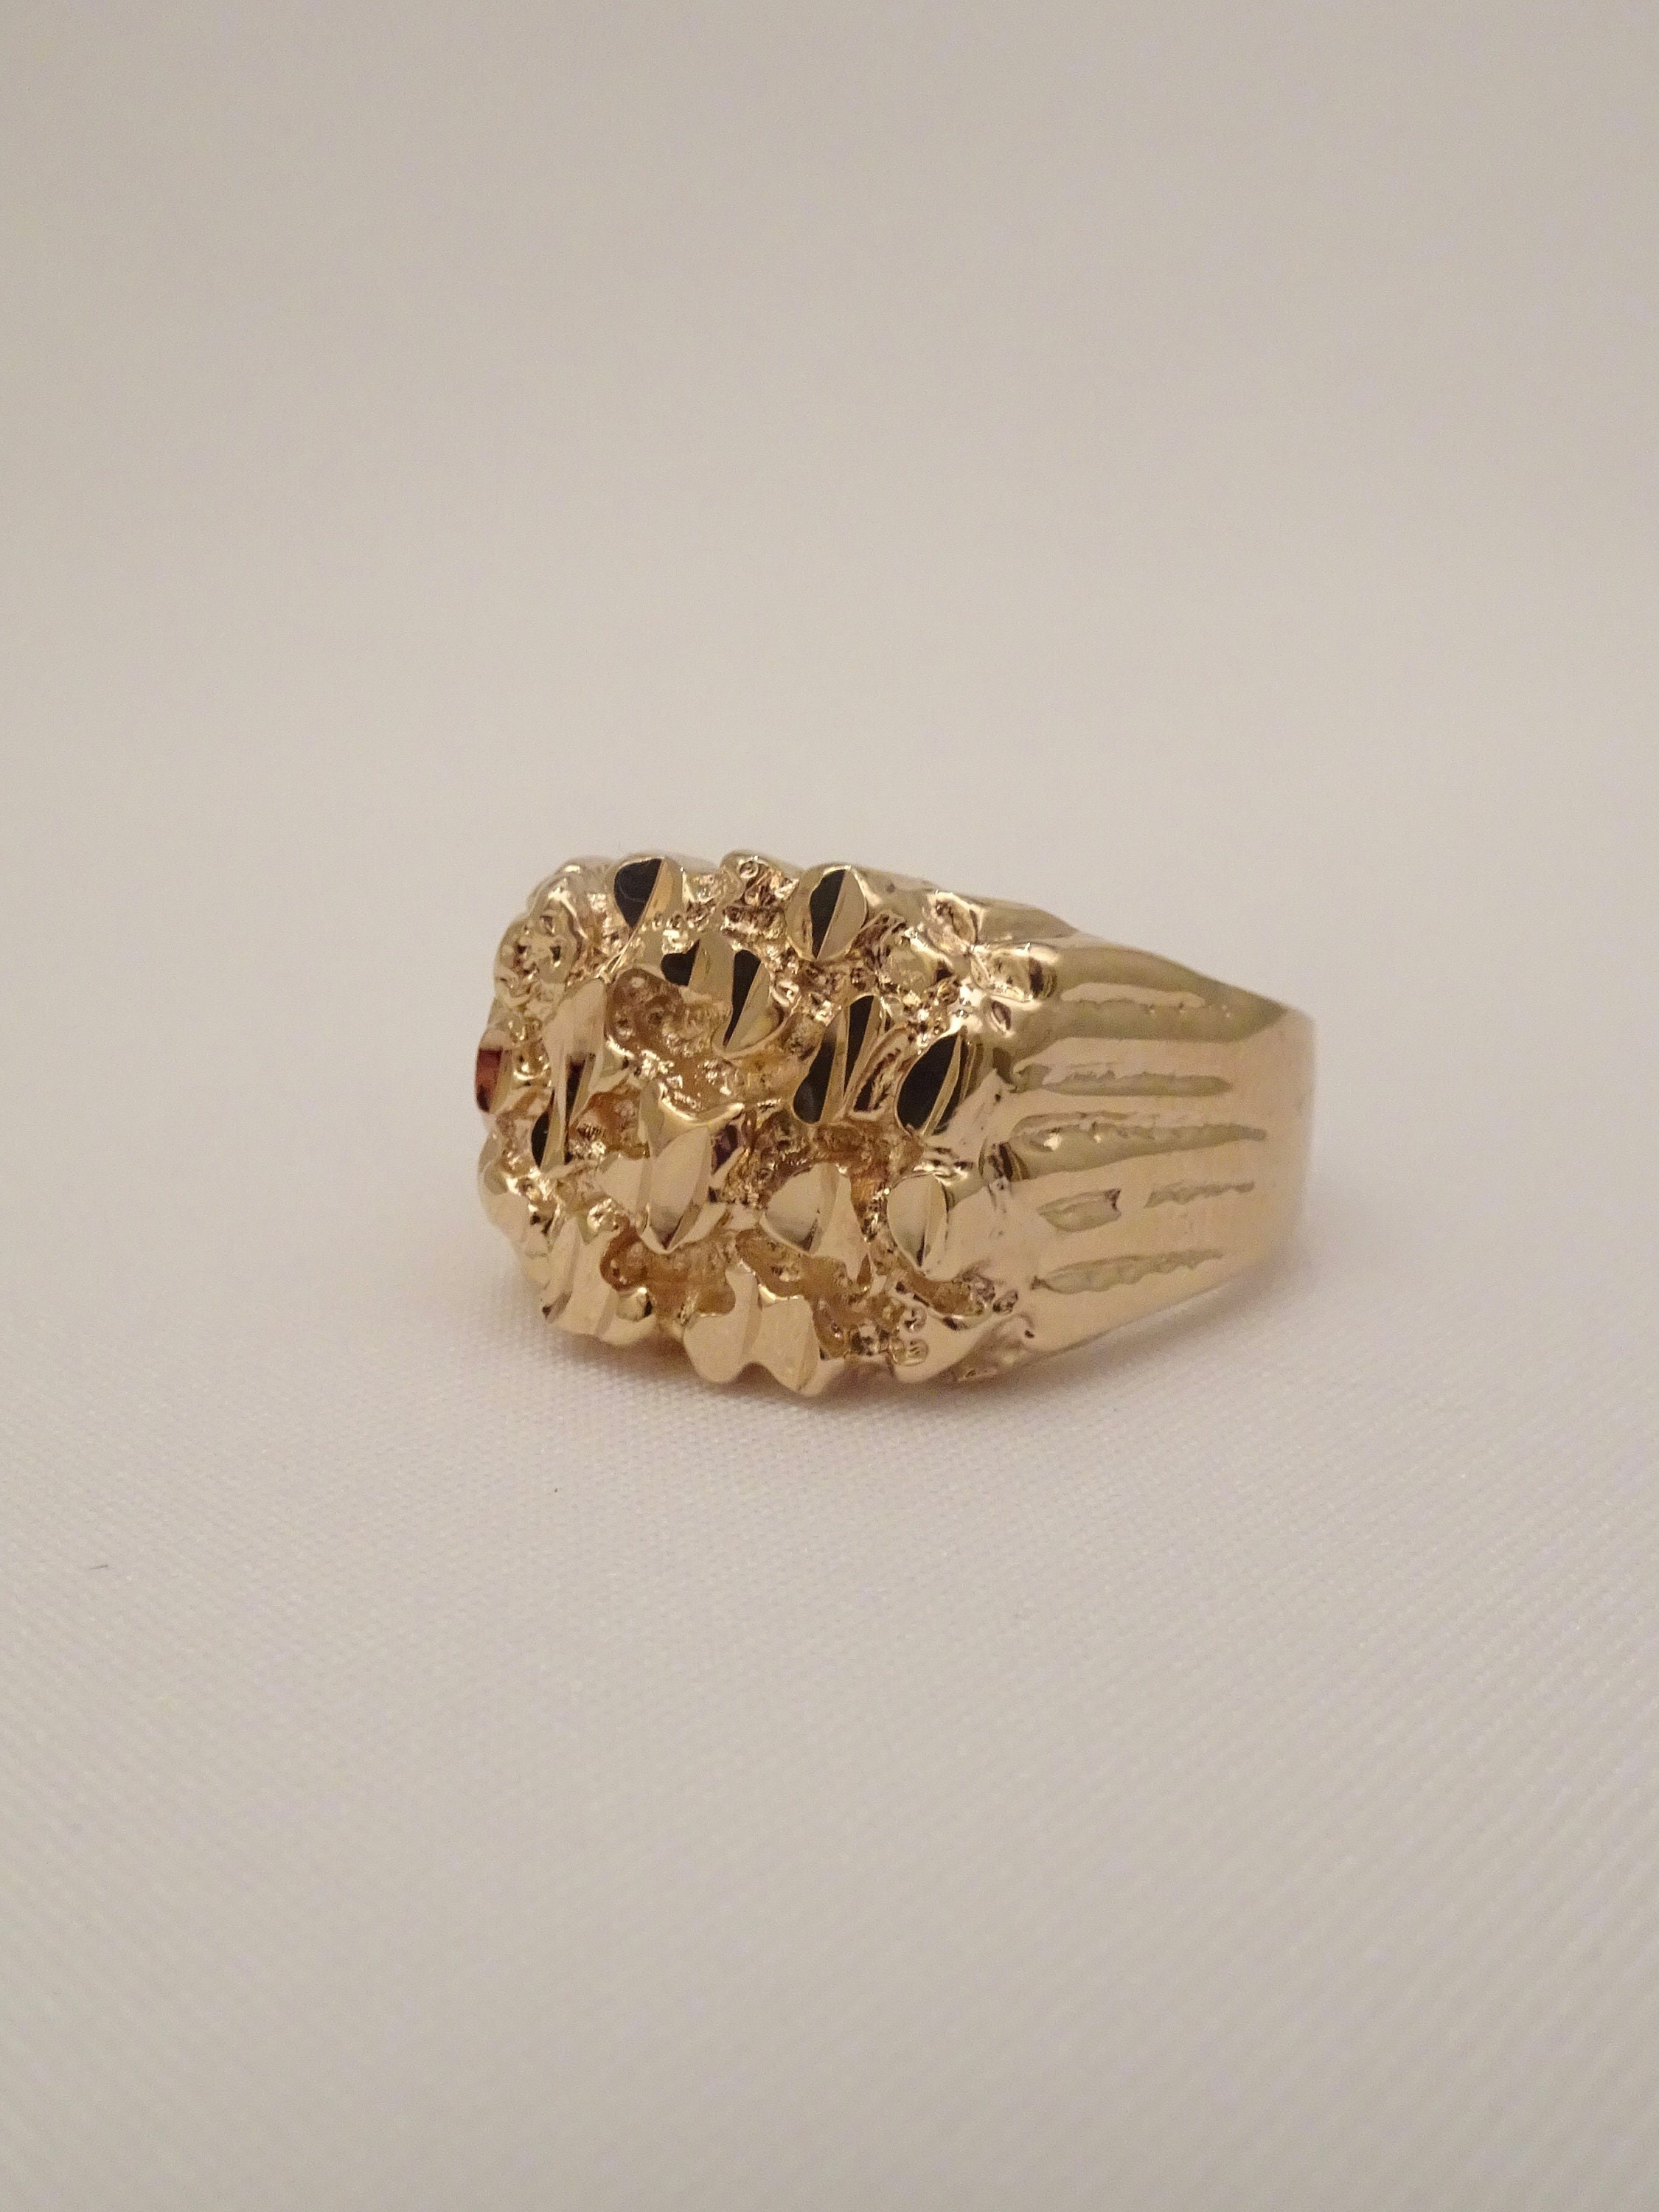 631f4699b65 Or hommes bague or bague homme unisexe or 24 or plaqué pour